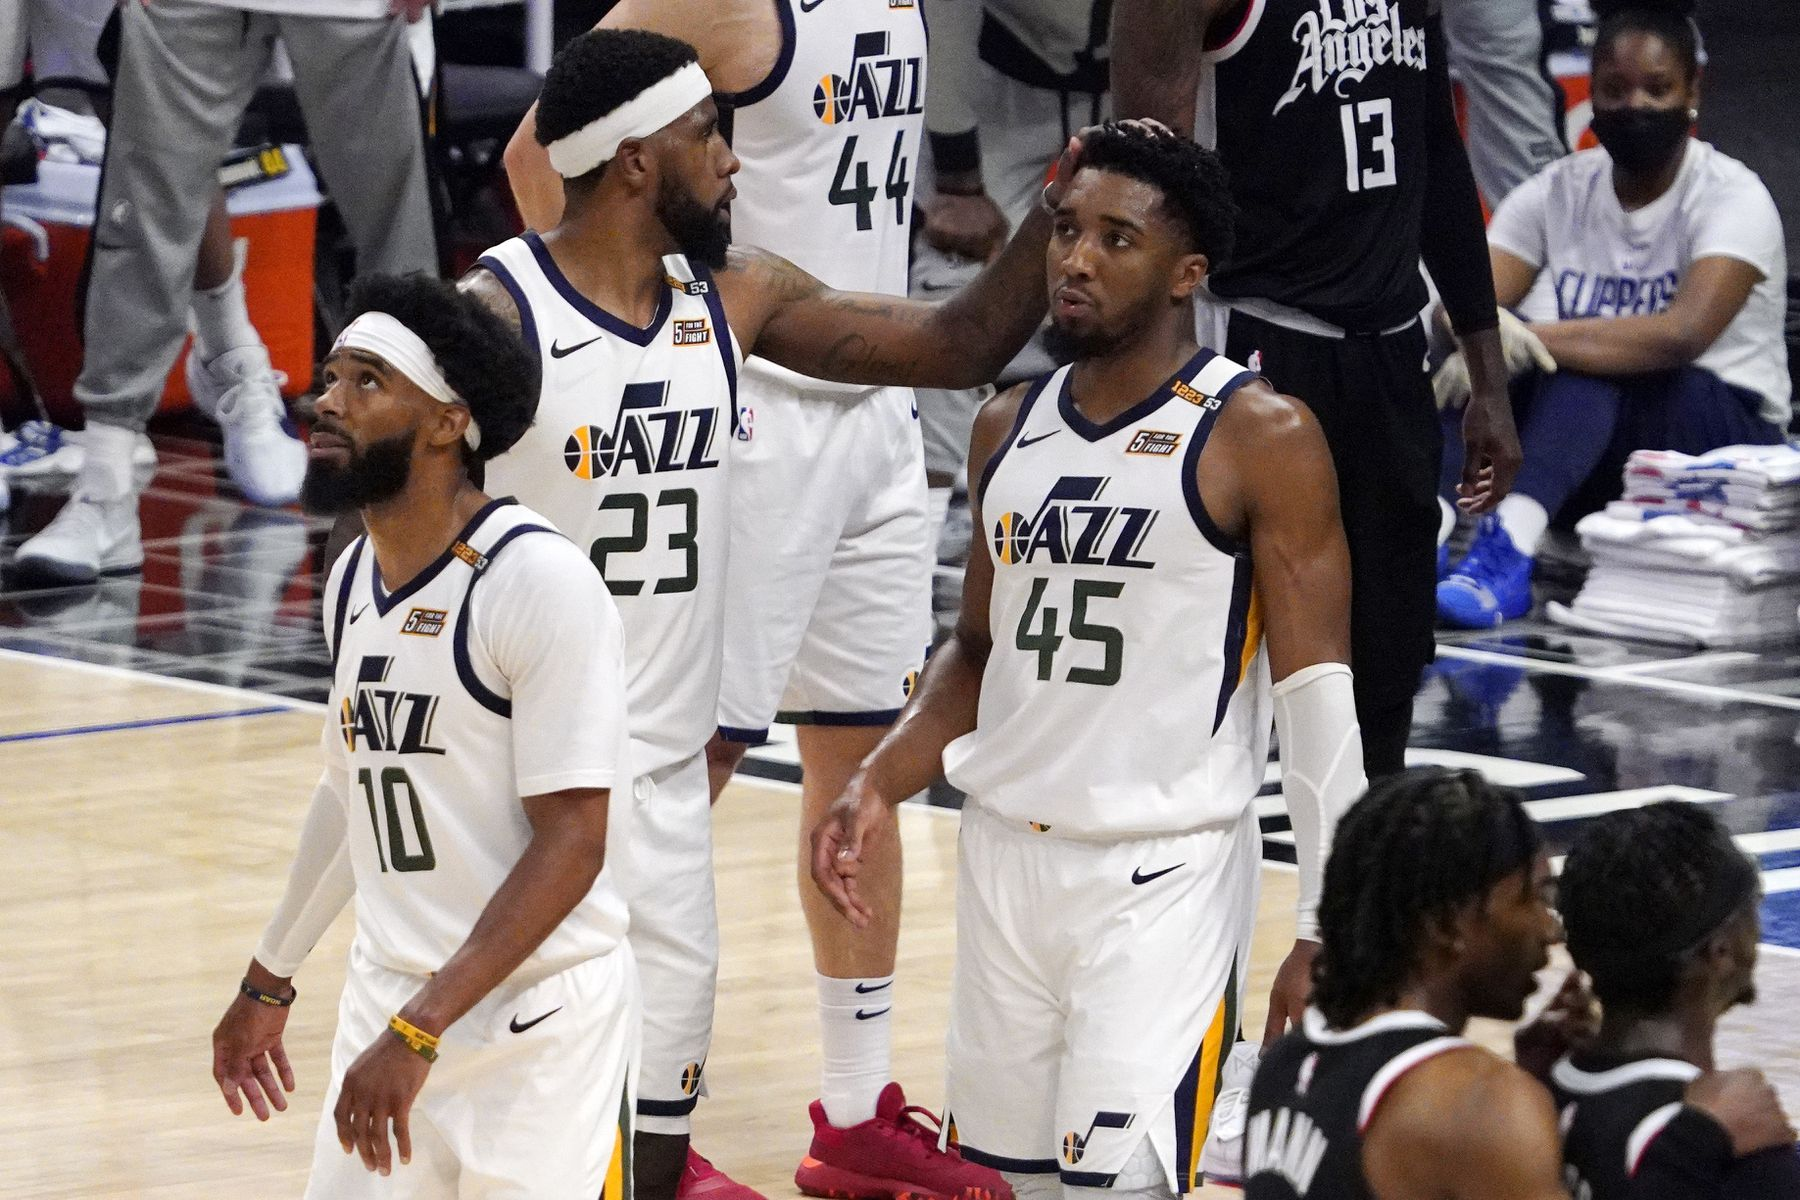 Utah Jazz forward Royce O'Neale, center, pats guard Donovan Mitchell, right, on the head as guard Mike Conley walks away